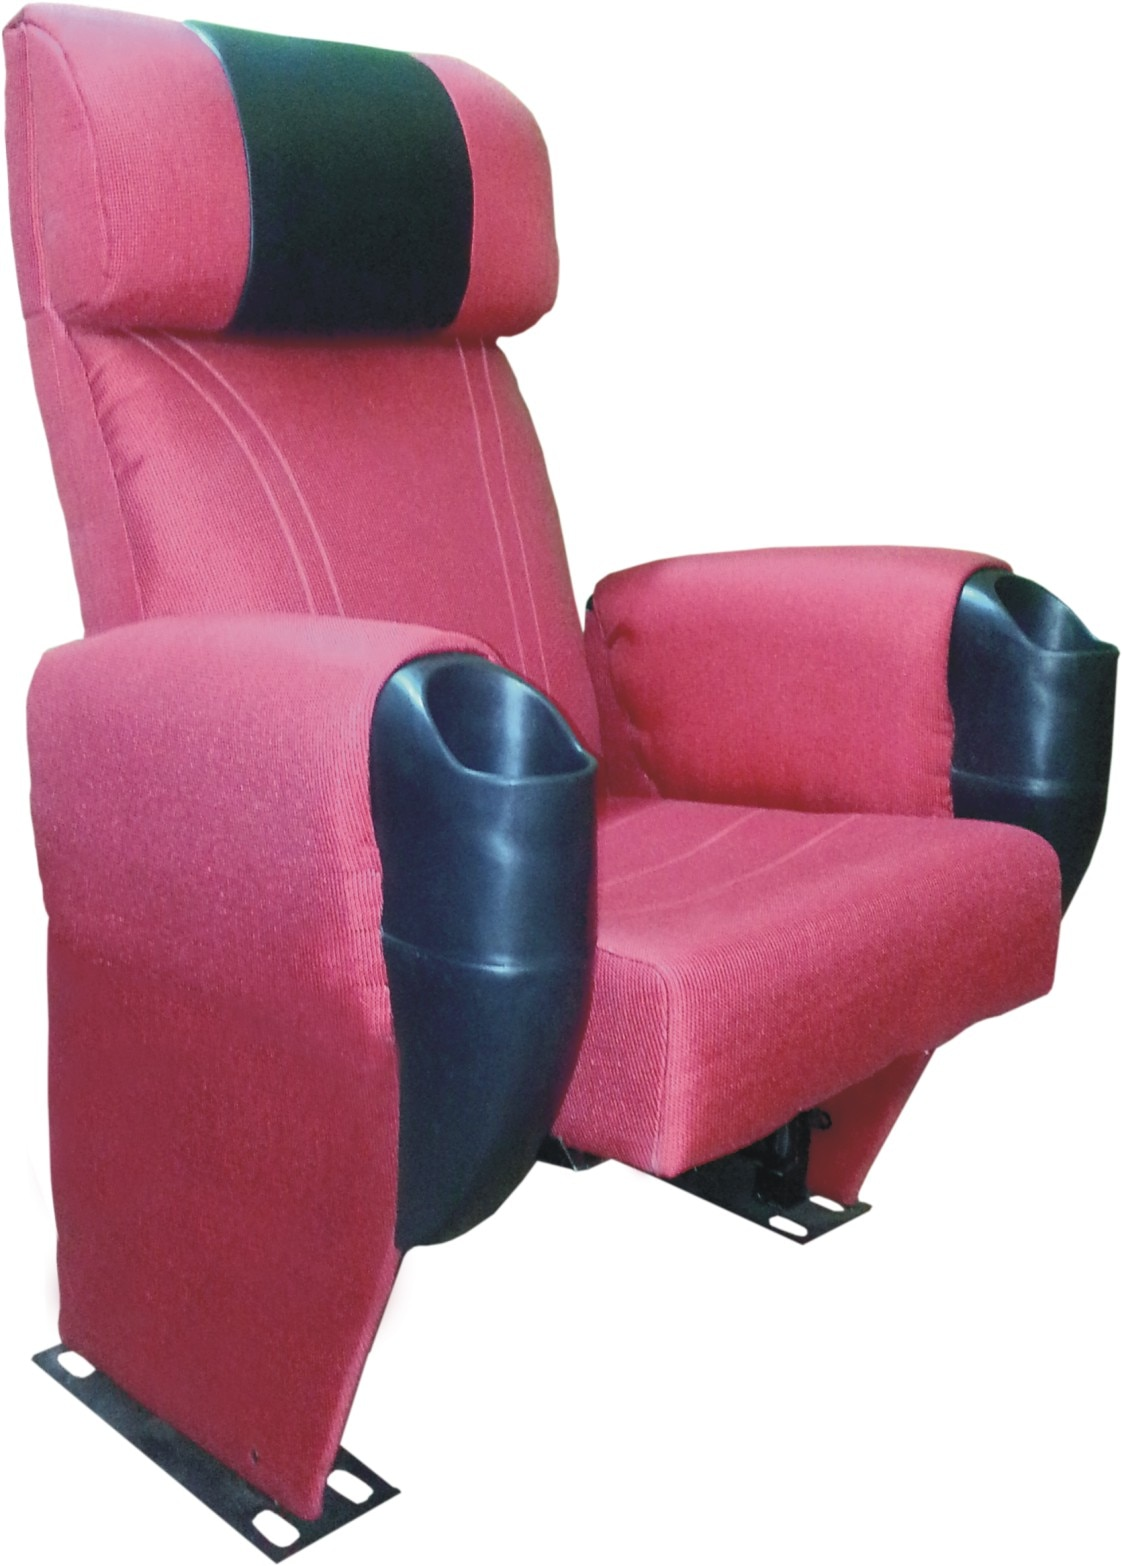 Auditorium Series chair manufacturer in patna   Spark International is the best Auditorium Series chair manufacturer in patna